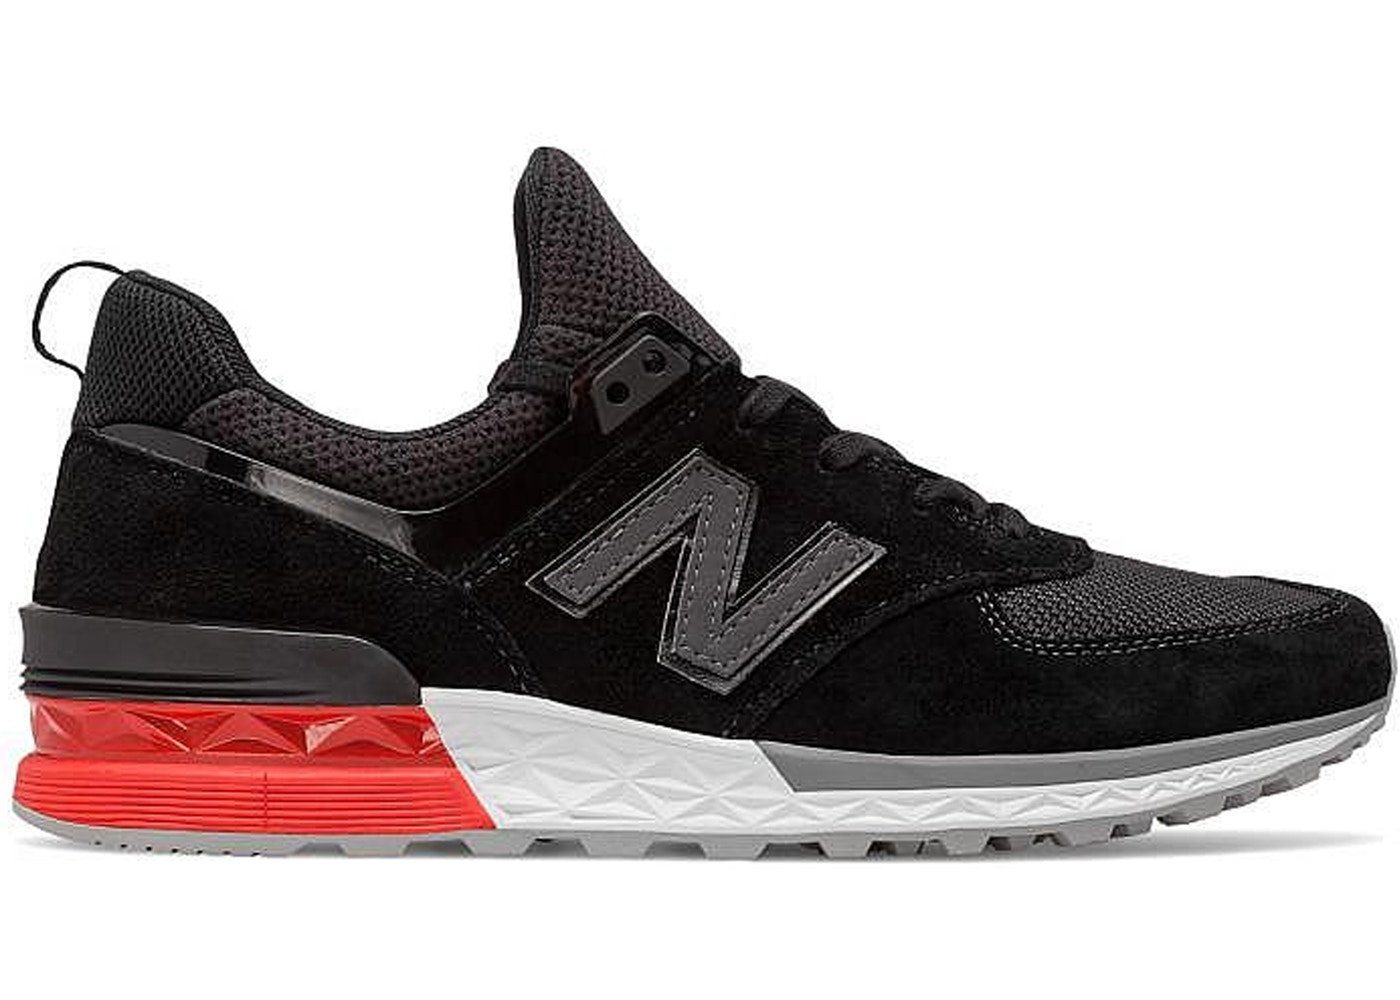 New Balance 574 Sport Black Red